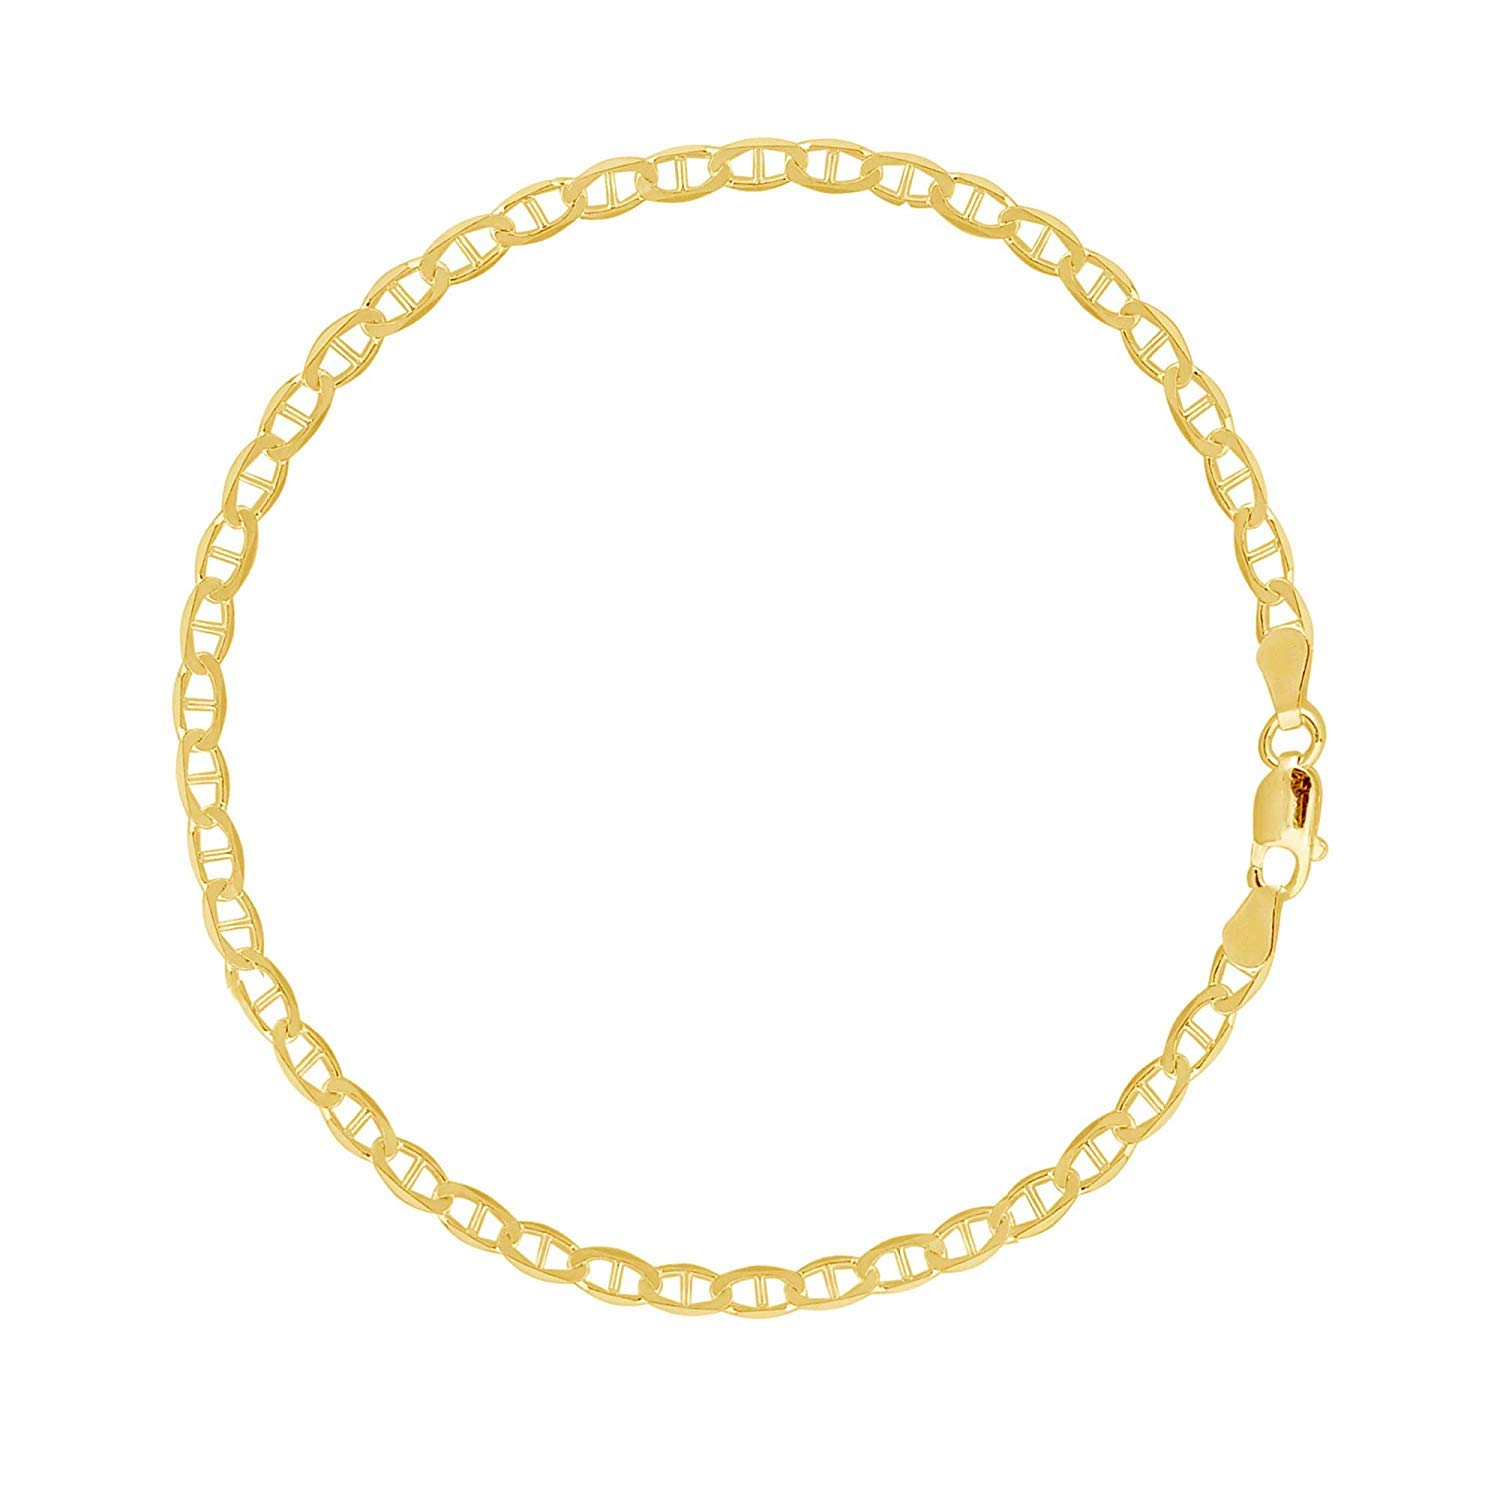 MCS Jewelry 10 Karat Solid Yellow Gold Mariner Link Anklet, (10'') (3.2mm Width)